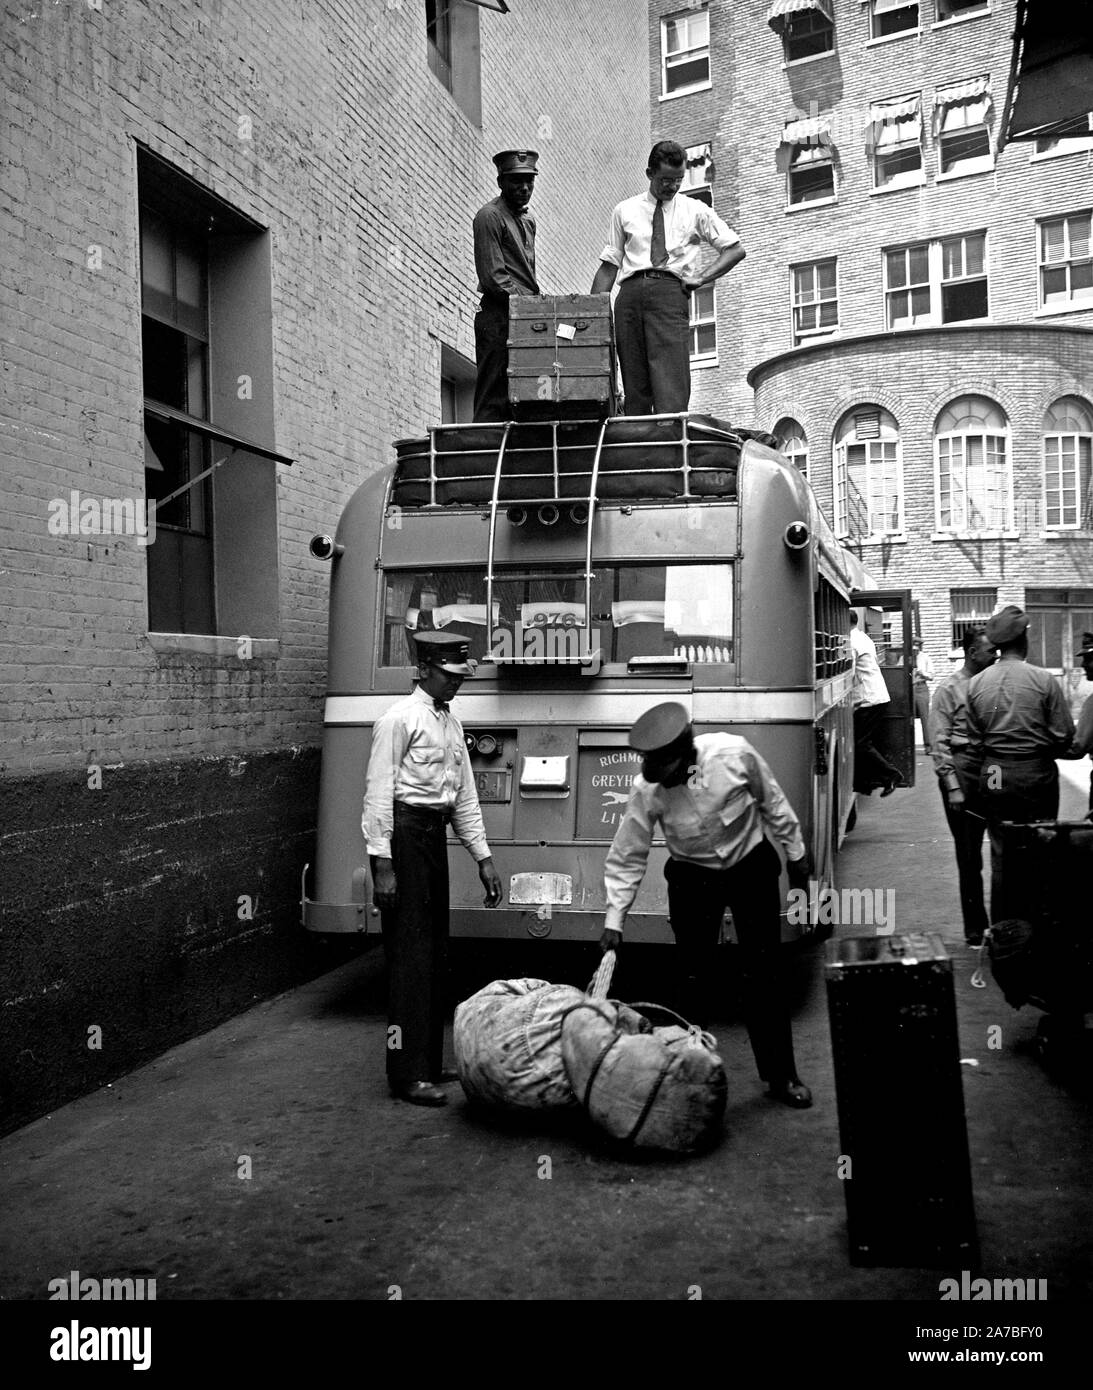 Workers At Greyhound Bus Station Loading Luggage Ca 1937 Stock Photo Alamy